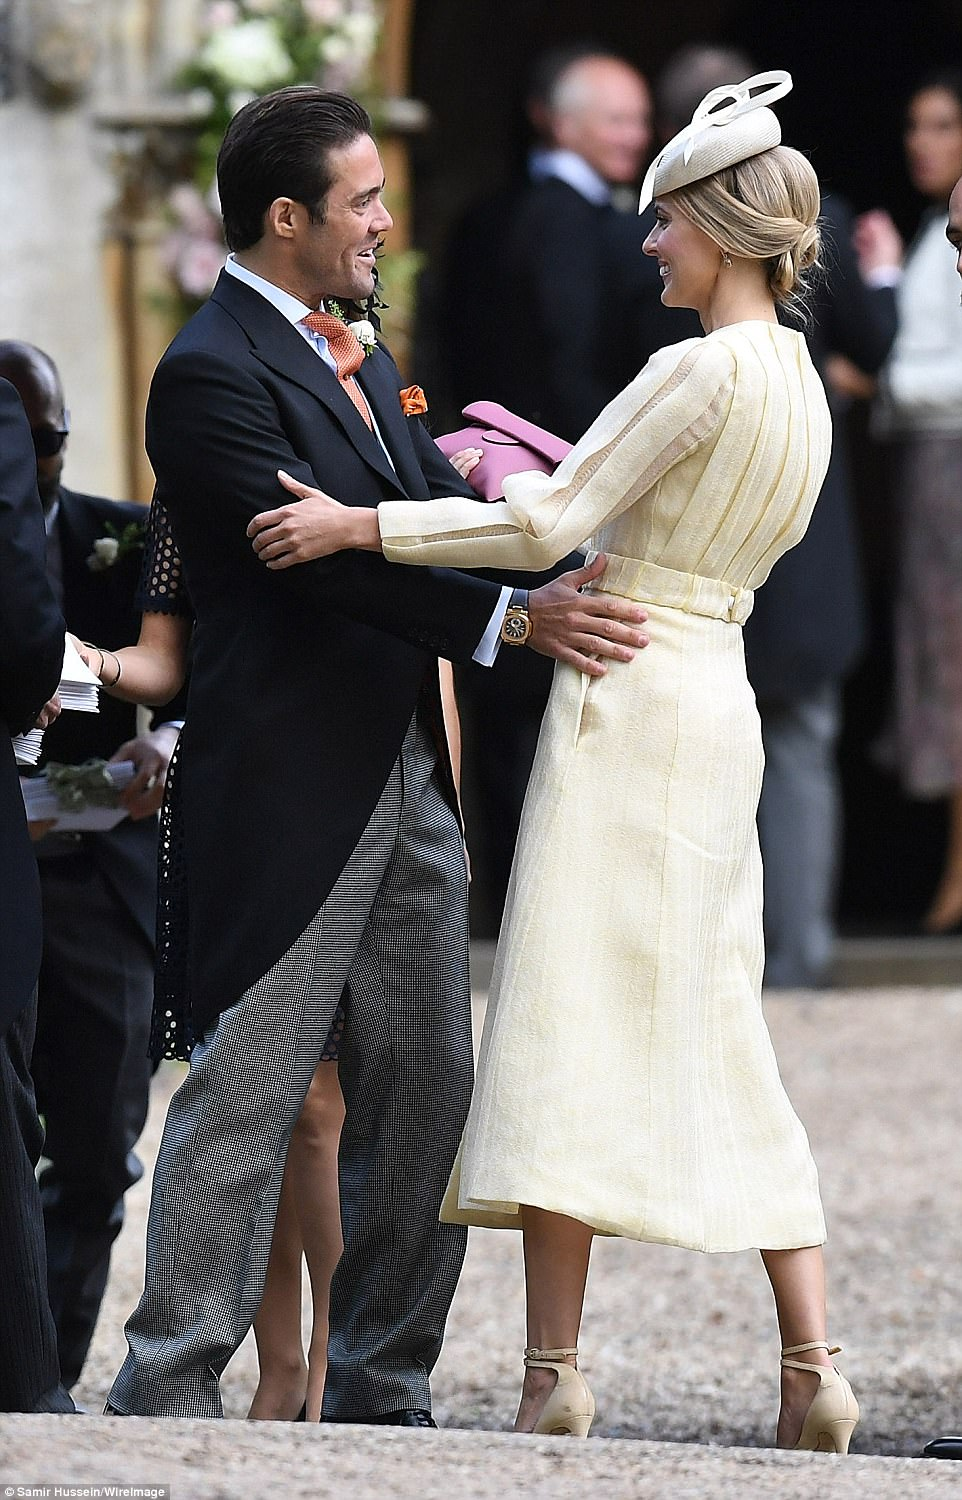 Spencer Matthews, brother of James Matthews, greets James Middleton's girlfriend Donna Air outside the church